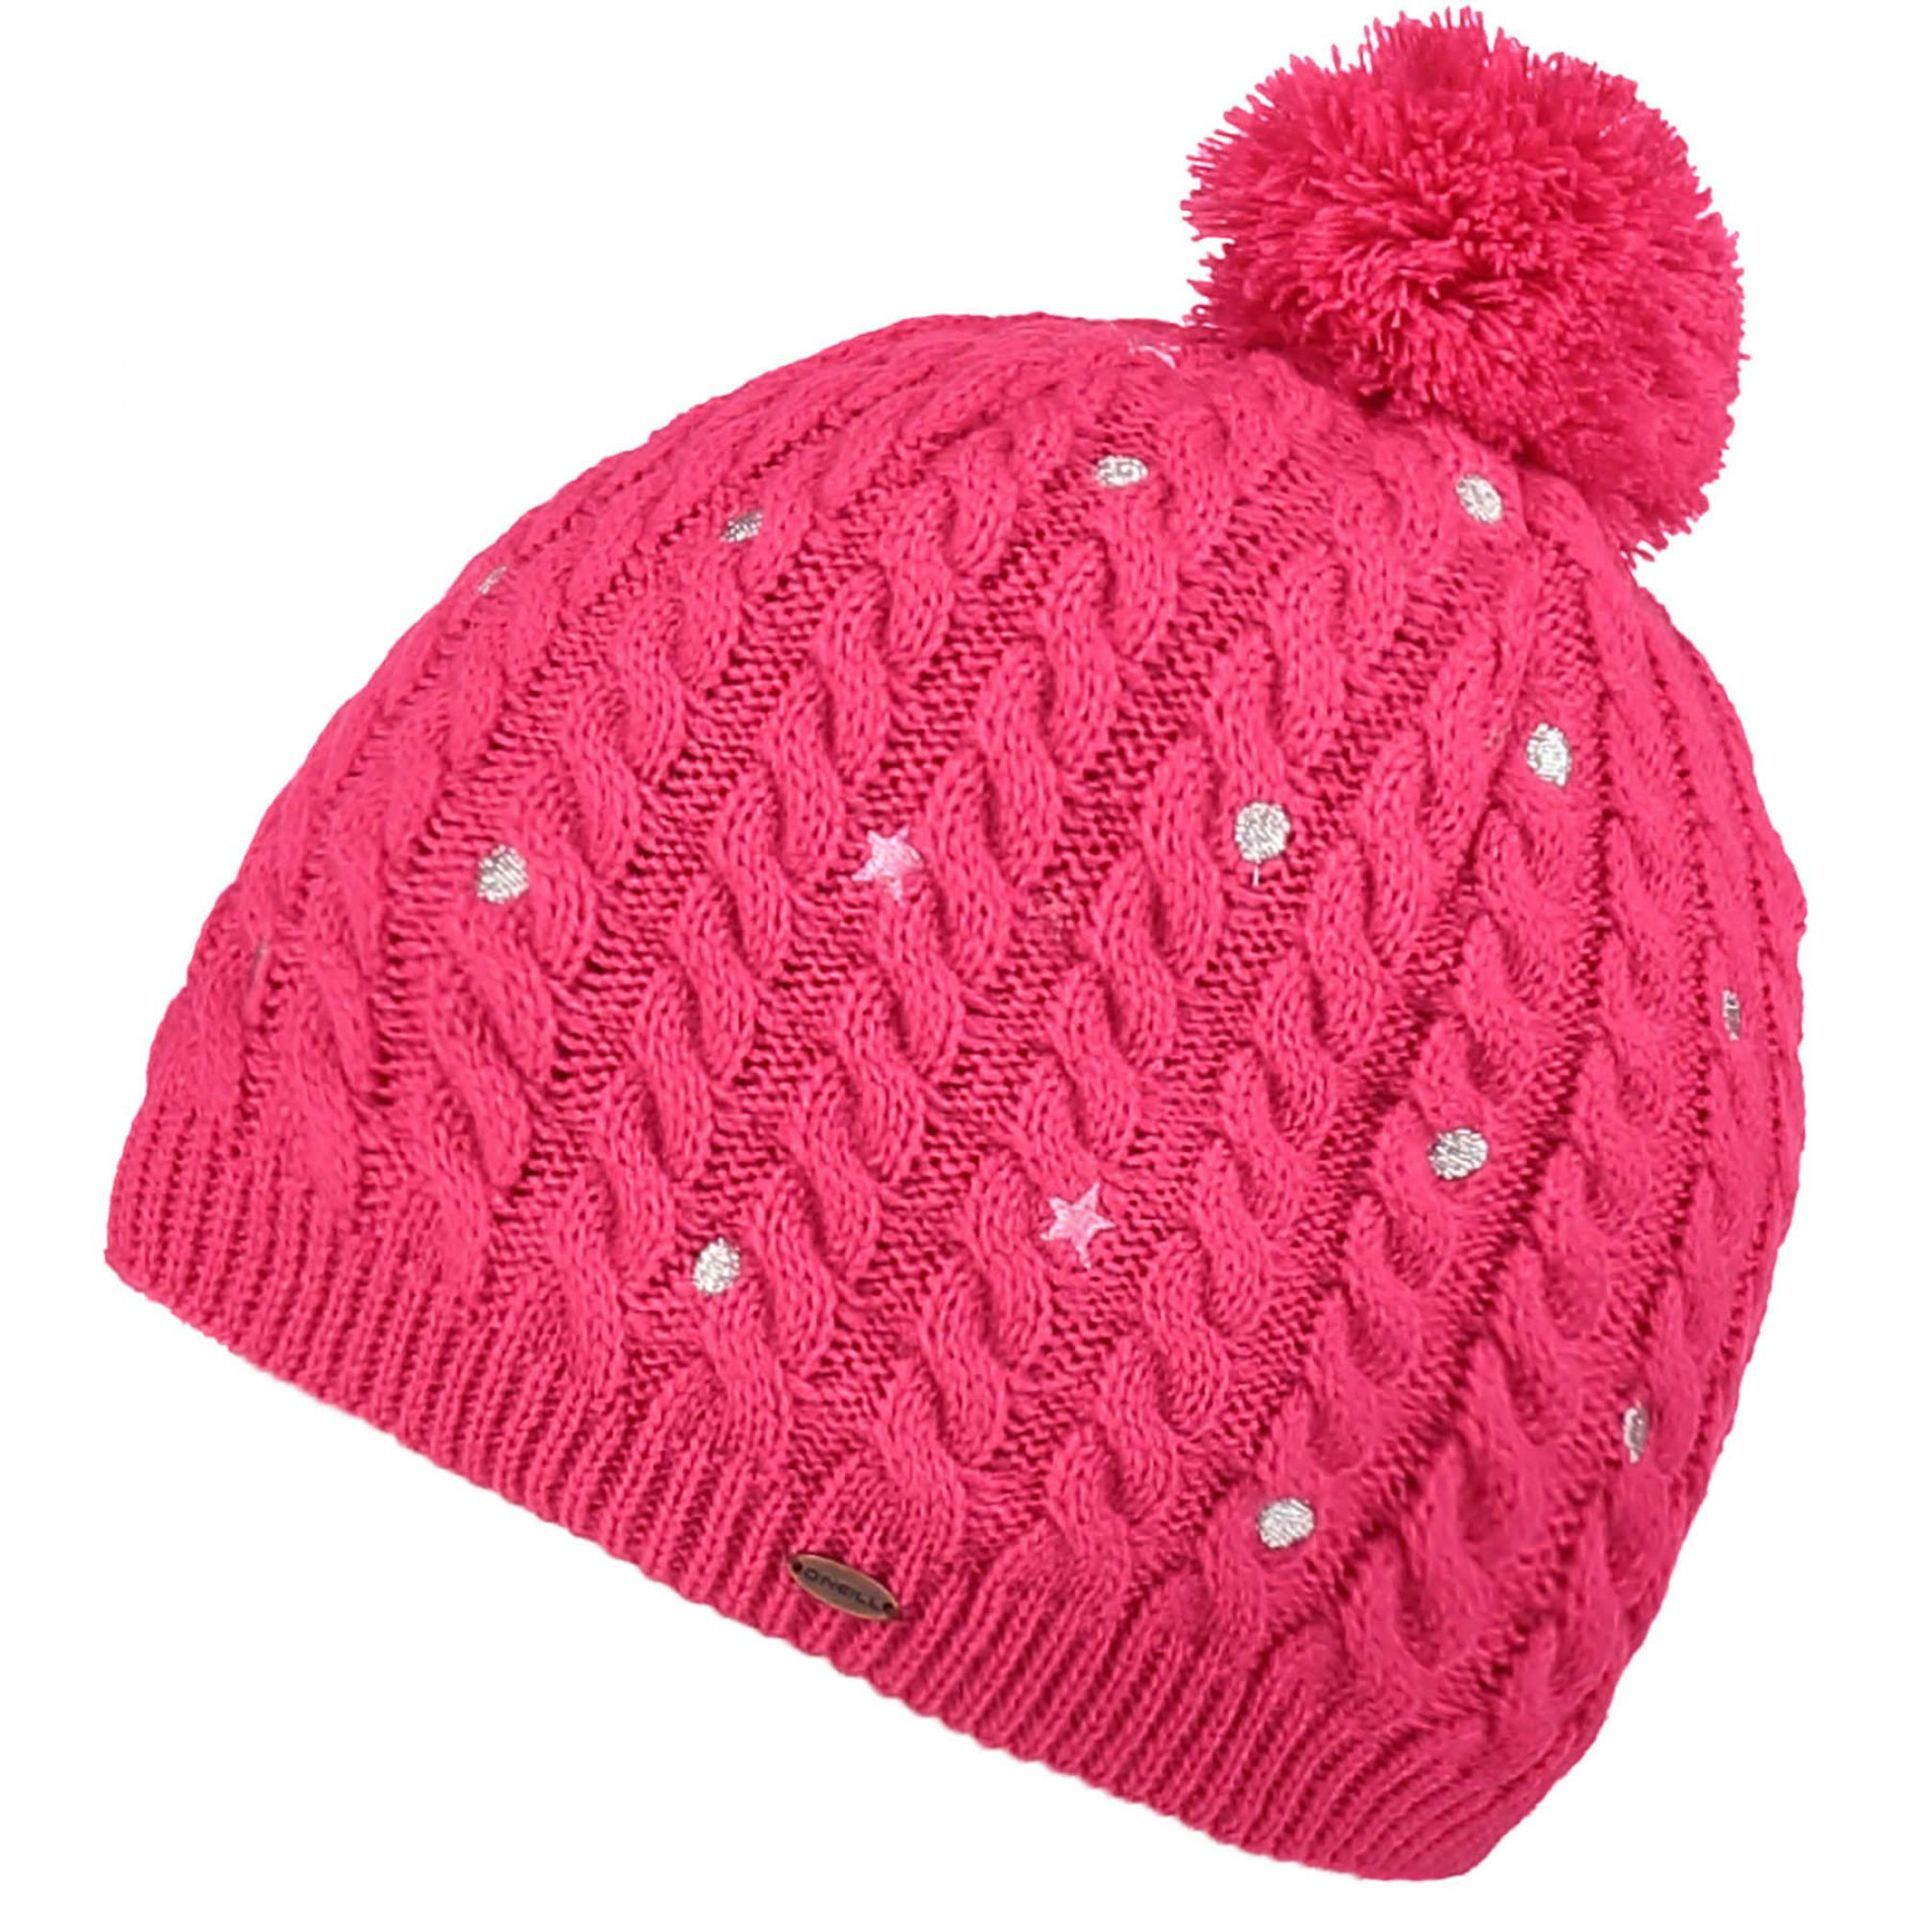 CZAPKA ONEILL GIRLS STAR DOT BEANIE RASPBERRY SORBET